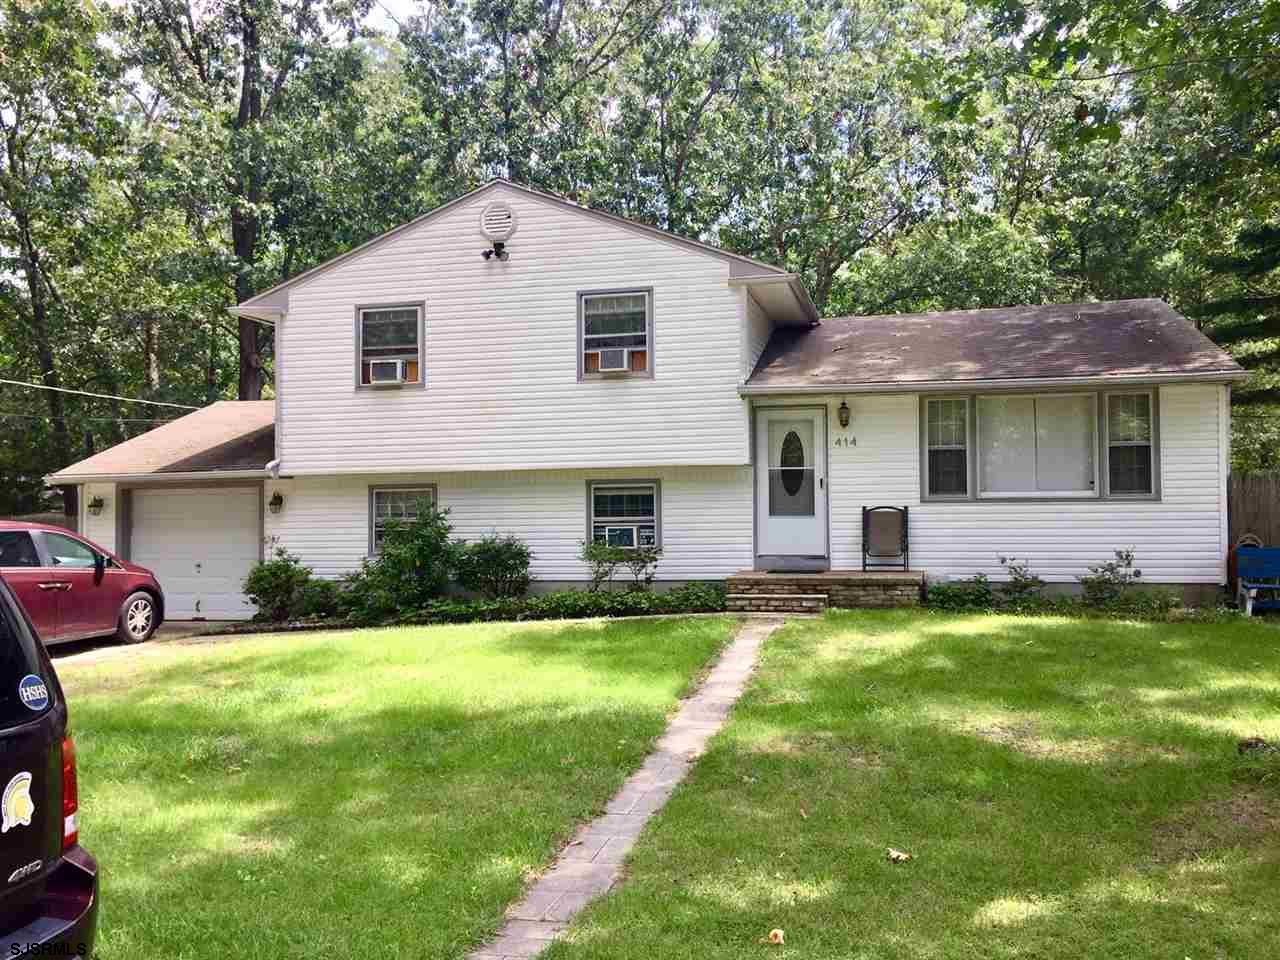 This 4 bedroom Galloway bi-level has plenty of room for everyone with 1834 sf. of living space. Large utility room with extra storage space in converted garage. Wall to wall carpet can be removed to expose original hardwood floors. New water heater and large, fenced in back yard.